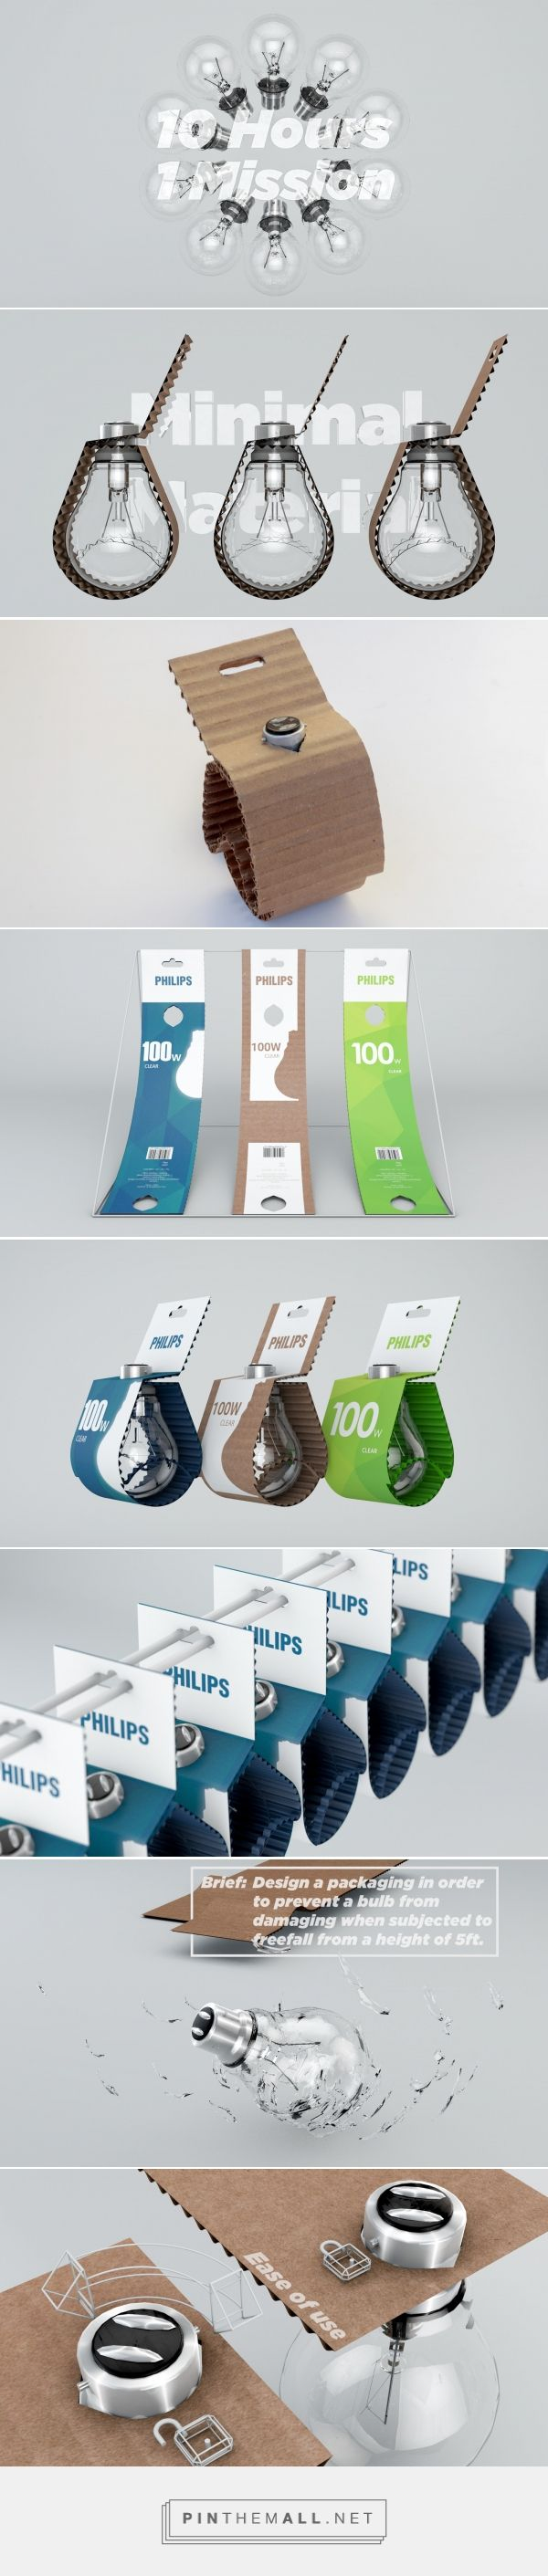 Lightbulb Drop Proof packaging concept by Shaunak Patel - http://www.packagingoftheworld.com/2017/03/lightbulb-drop-proof-packaging-student.html